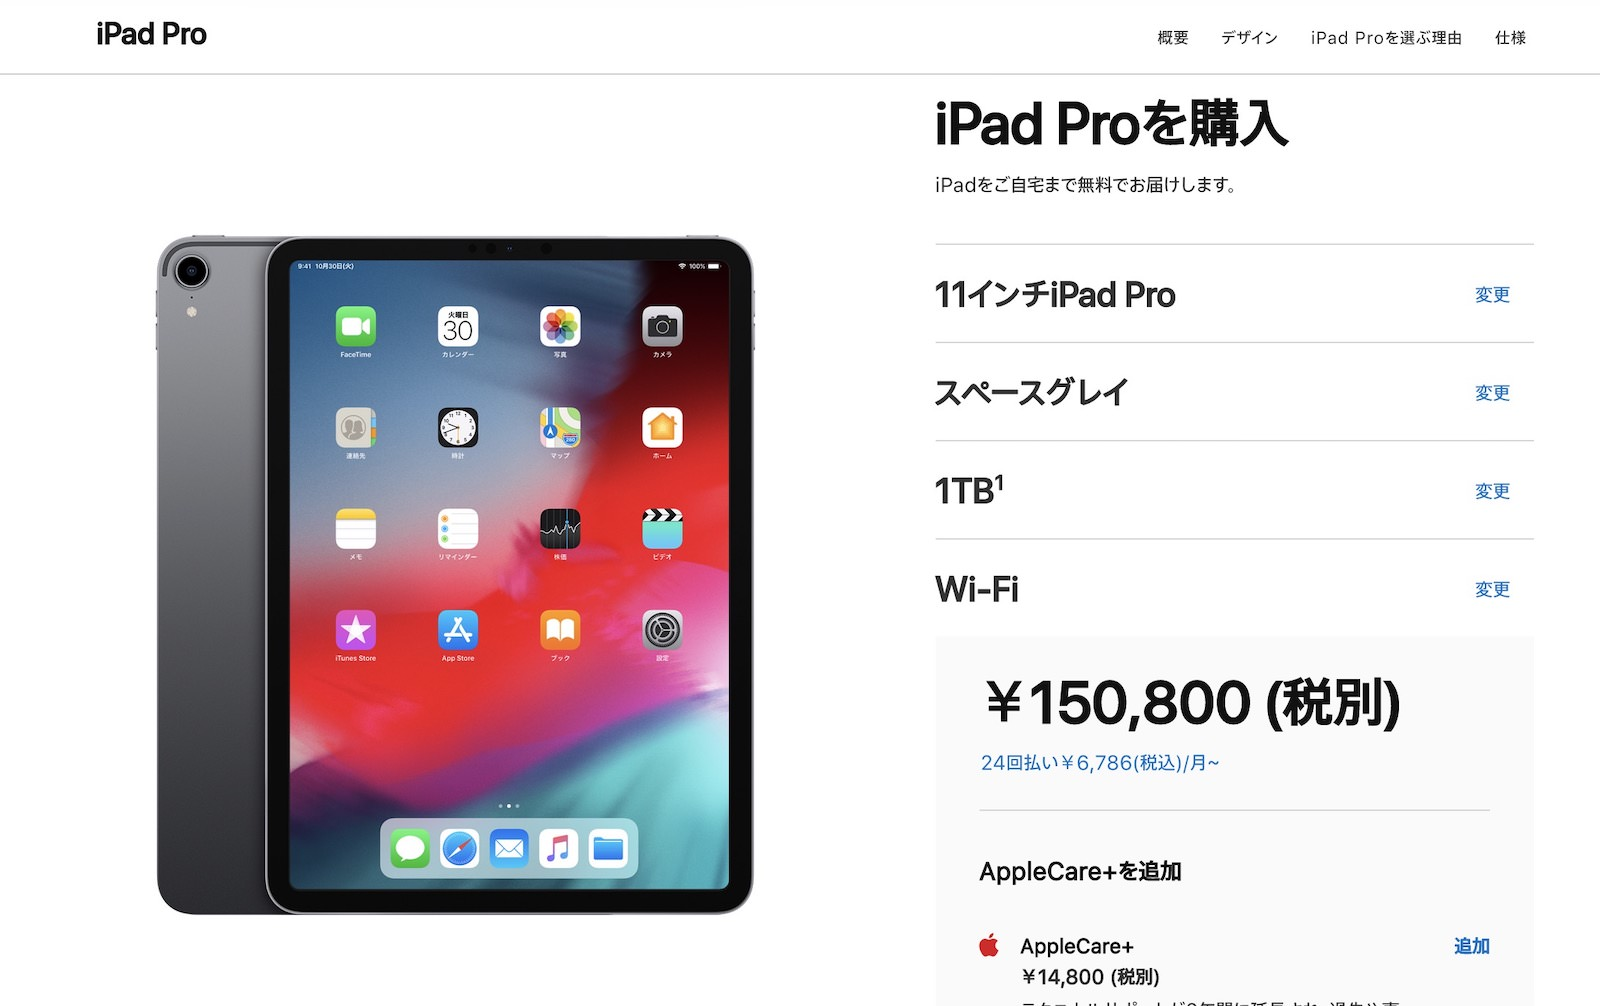 Ipad pro 1tb model pricing